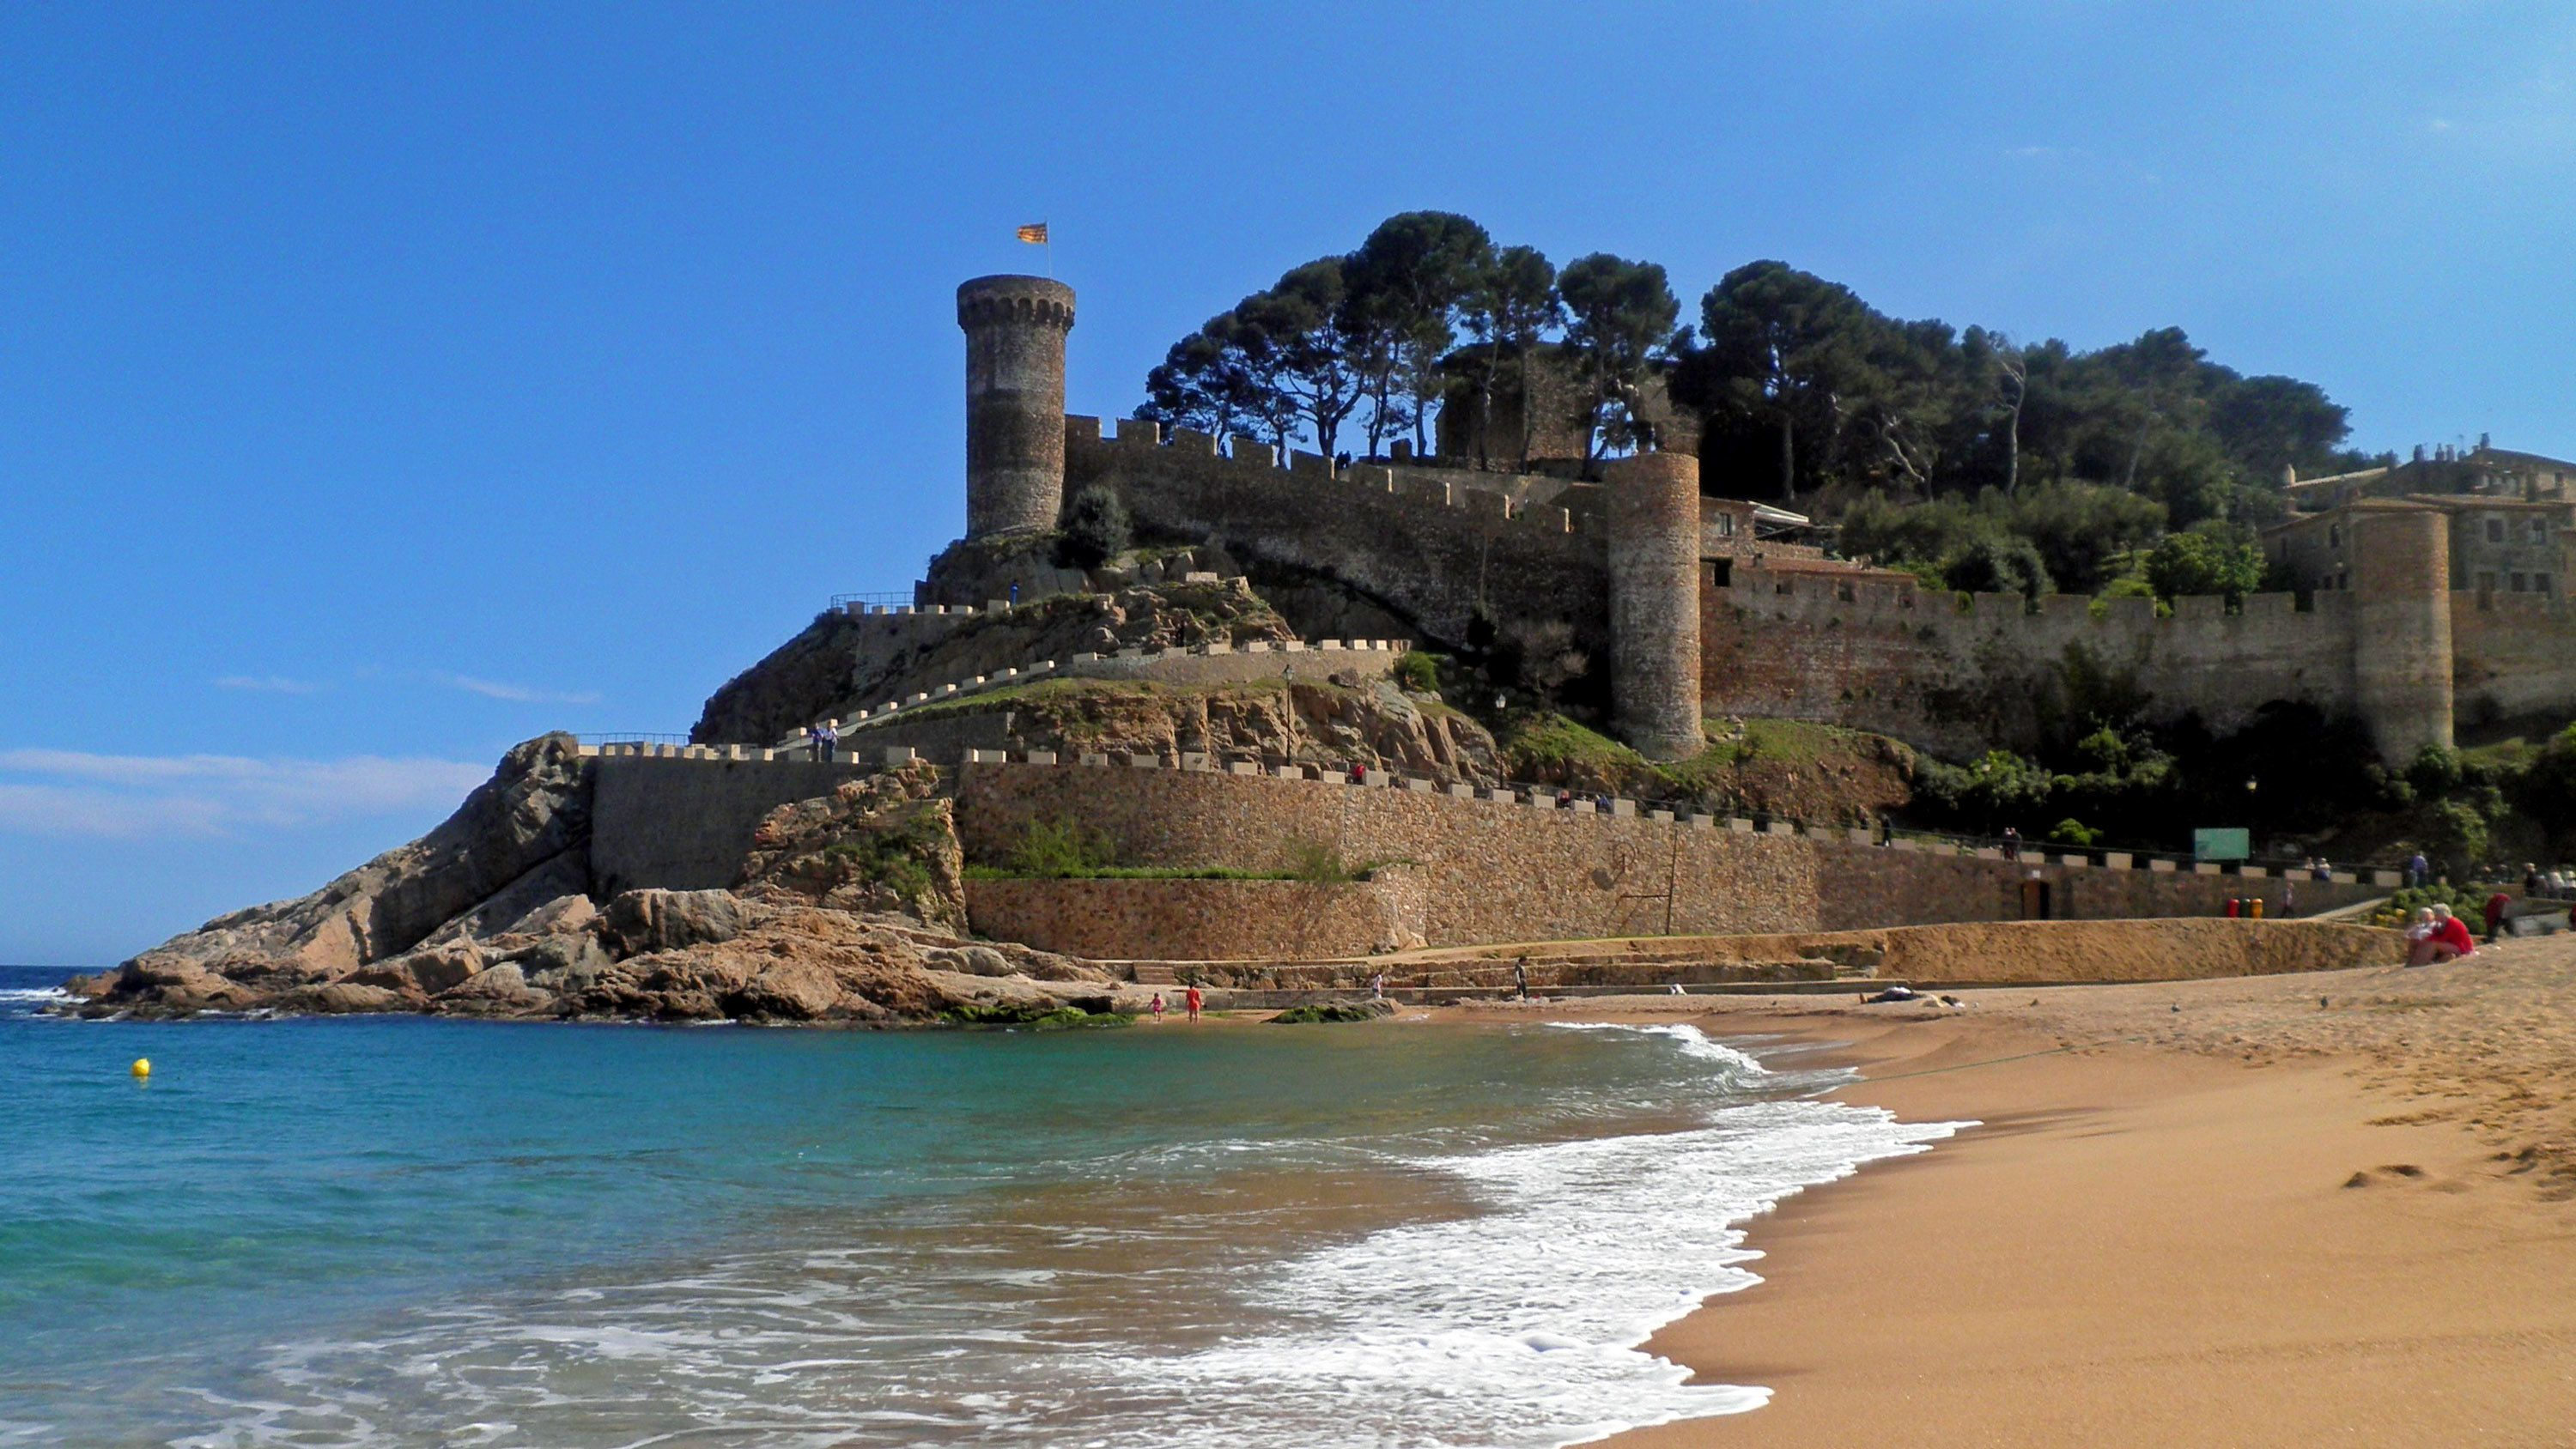 Full-Day Costa Brava Tour: Lloret de Mar & Tossa de Mar with Boat Cruise